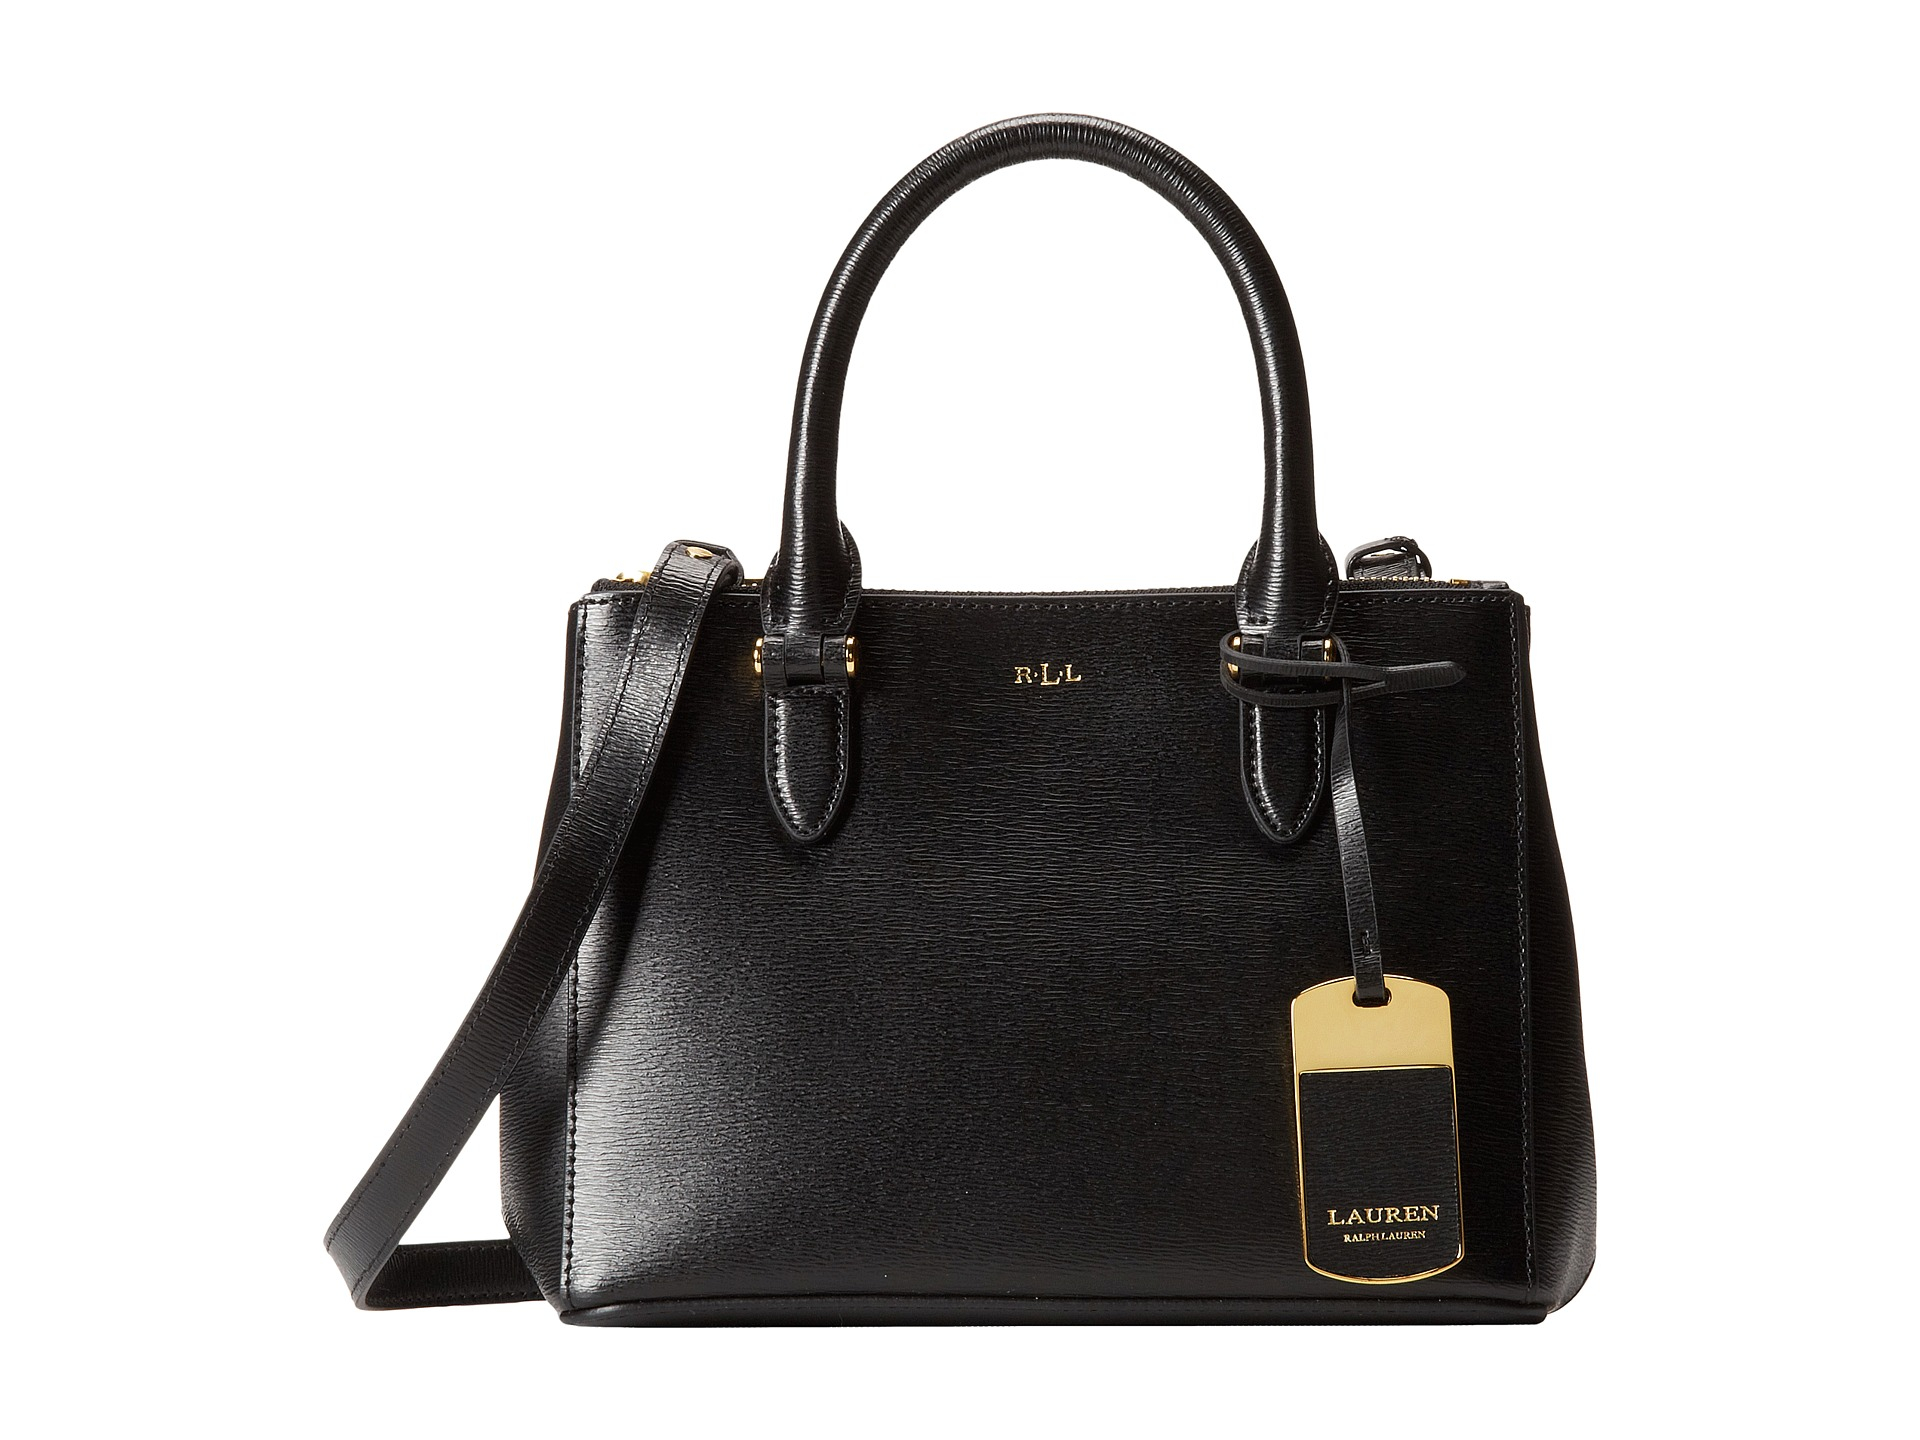 58127bbef422 Lyst - Lauren by Ralph Lauren Newbury Mini Double Zip Satchel in Black